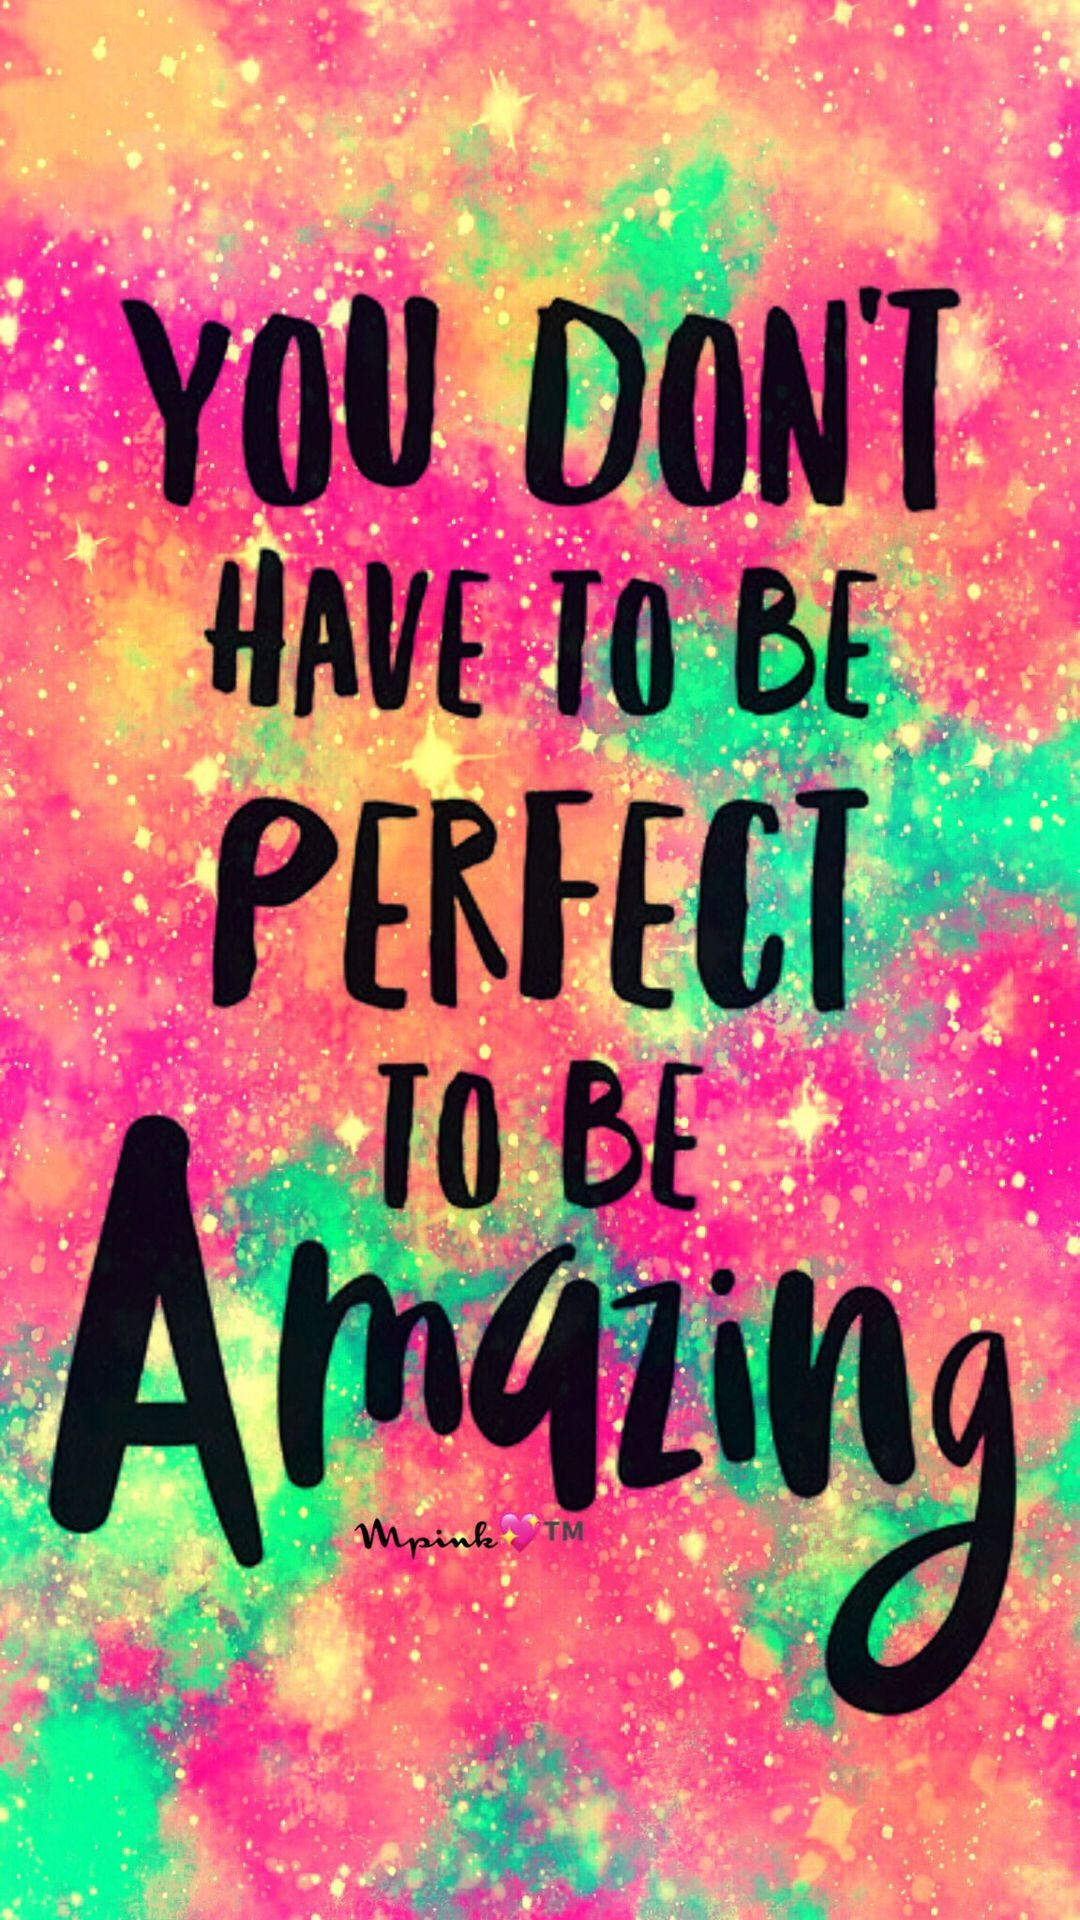 You Don T Have To Be Perfect Galaxy Wallpaper Androidwallpaper Iphonewallpaper Wallpaper Glitter Quotes Wallpaper Iphone Quotes Backgrounds Wallpaper Quotes